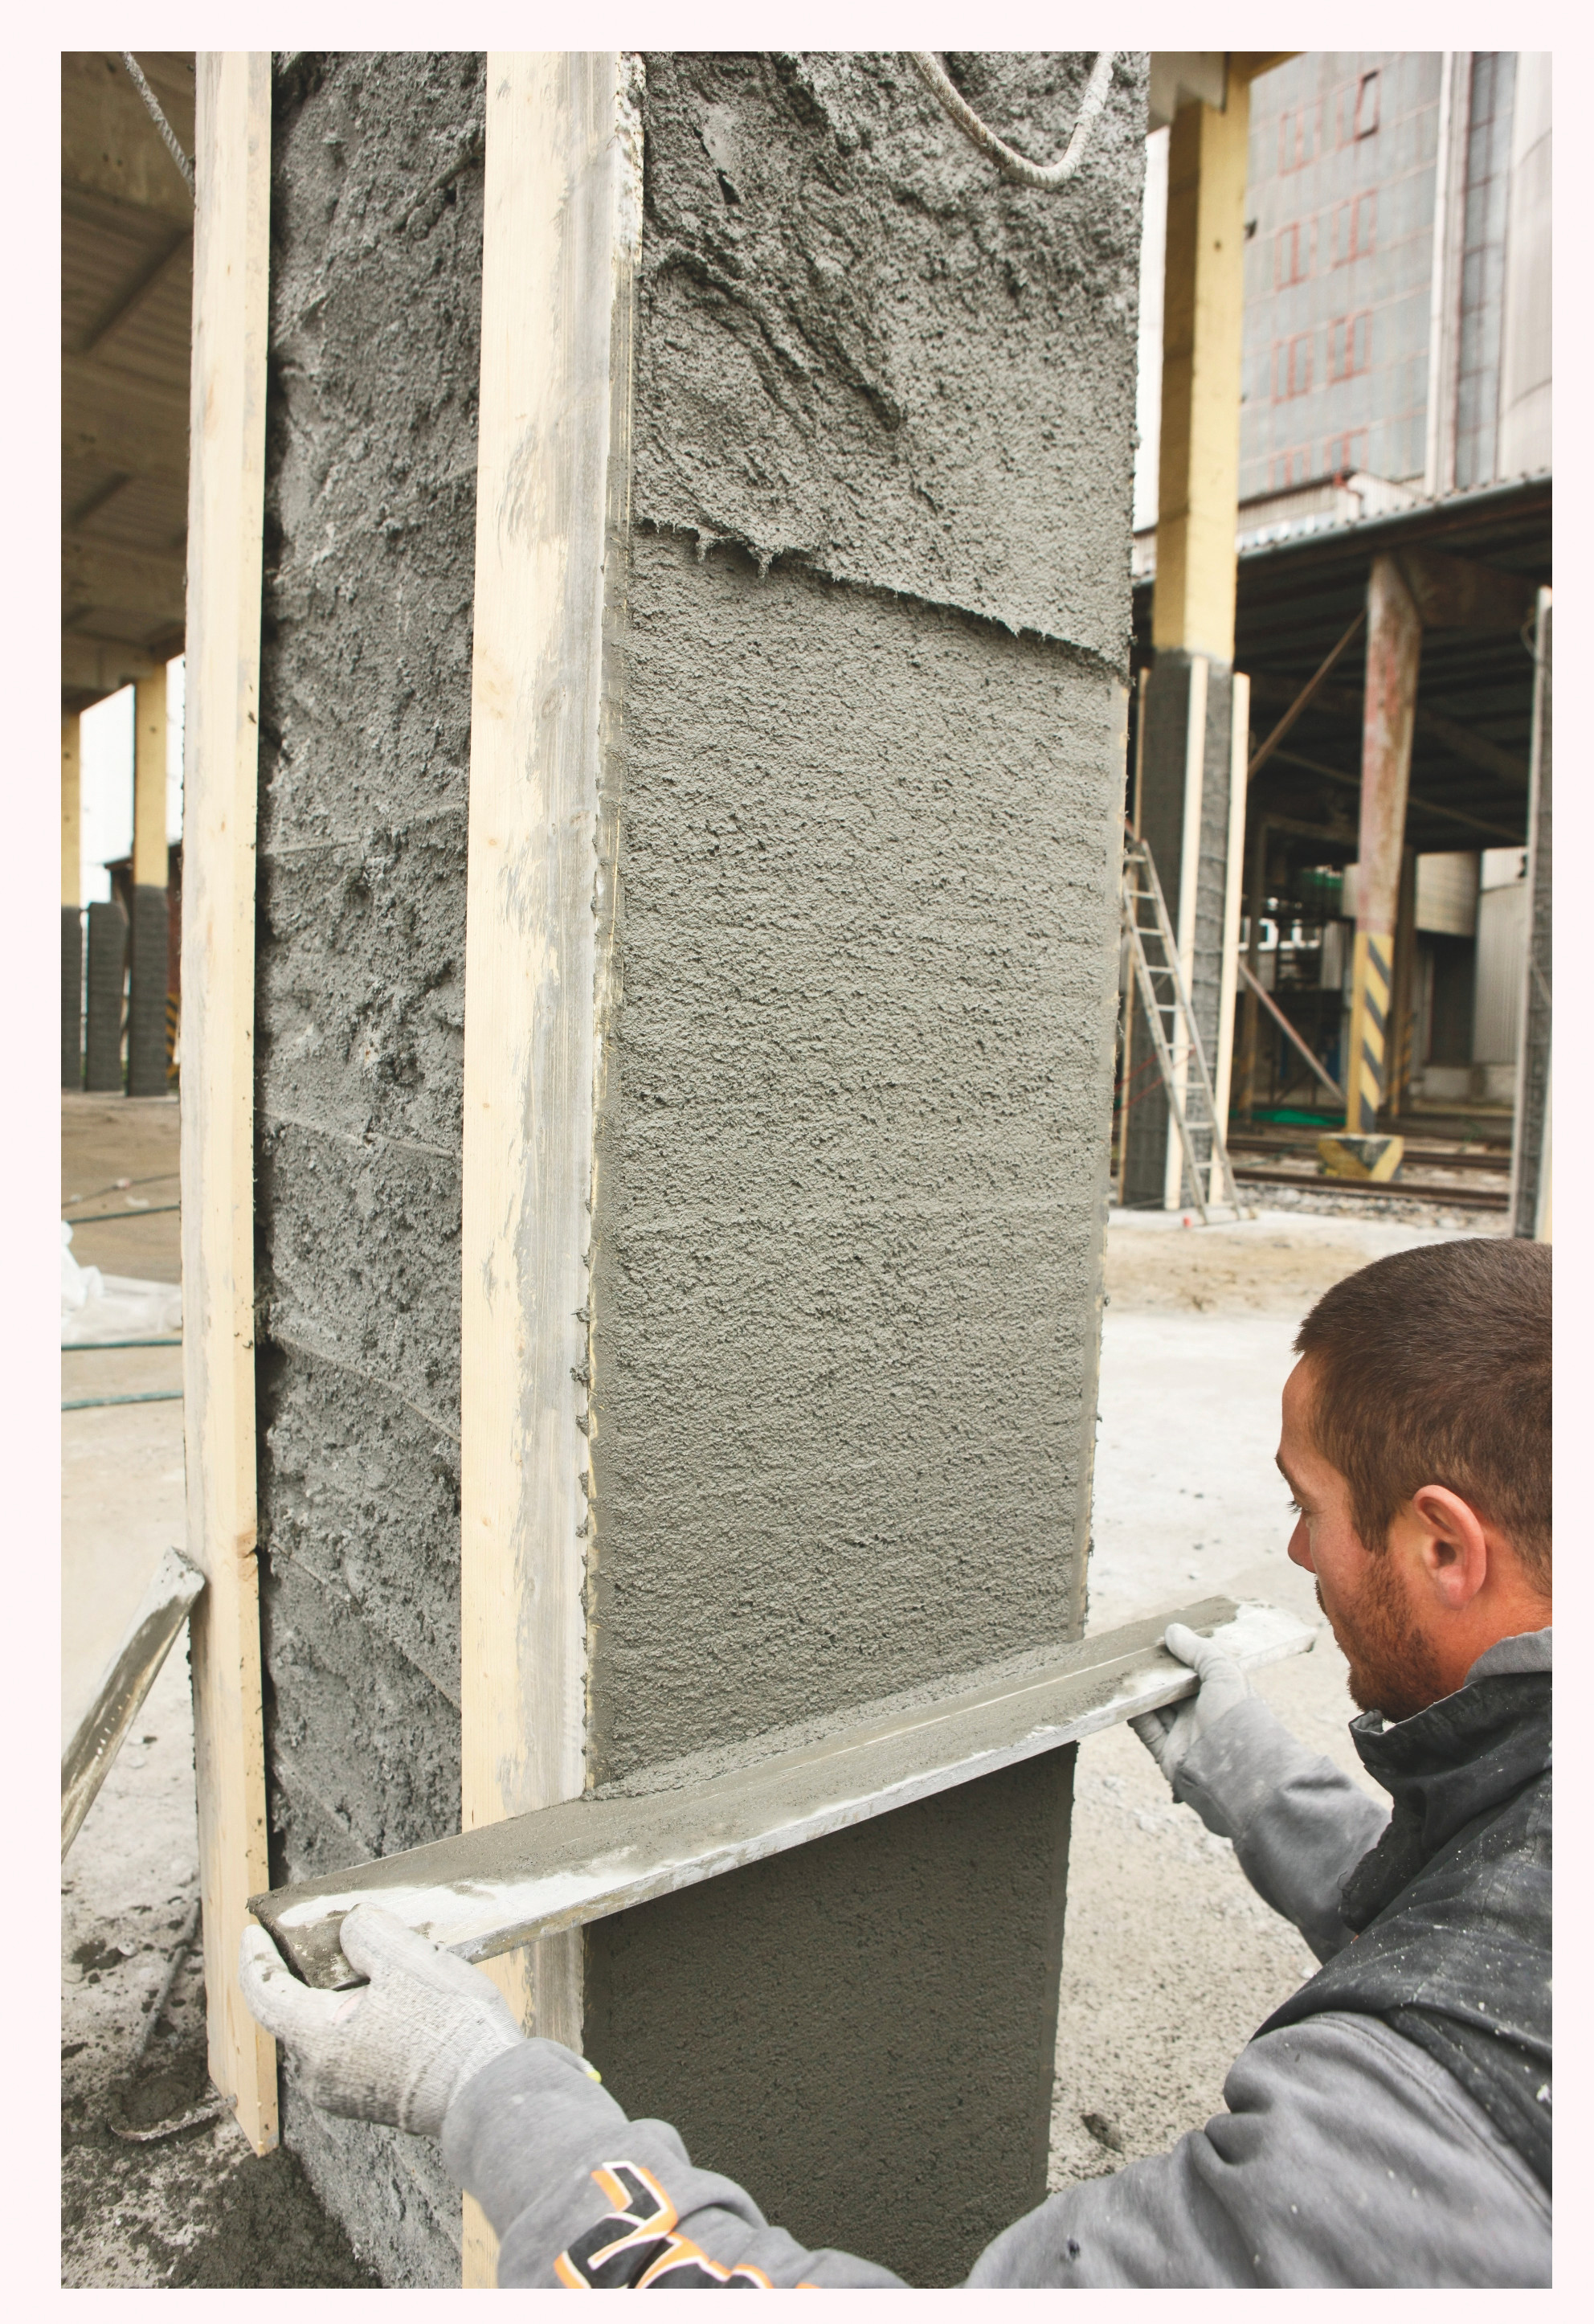 The Selection of Concrete Repair Materials